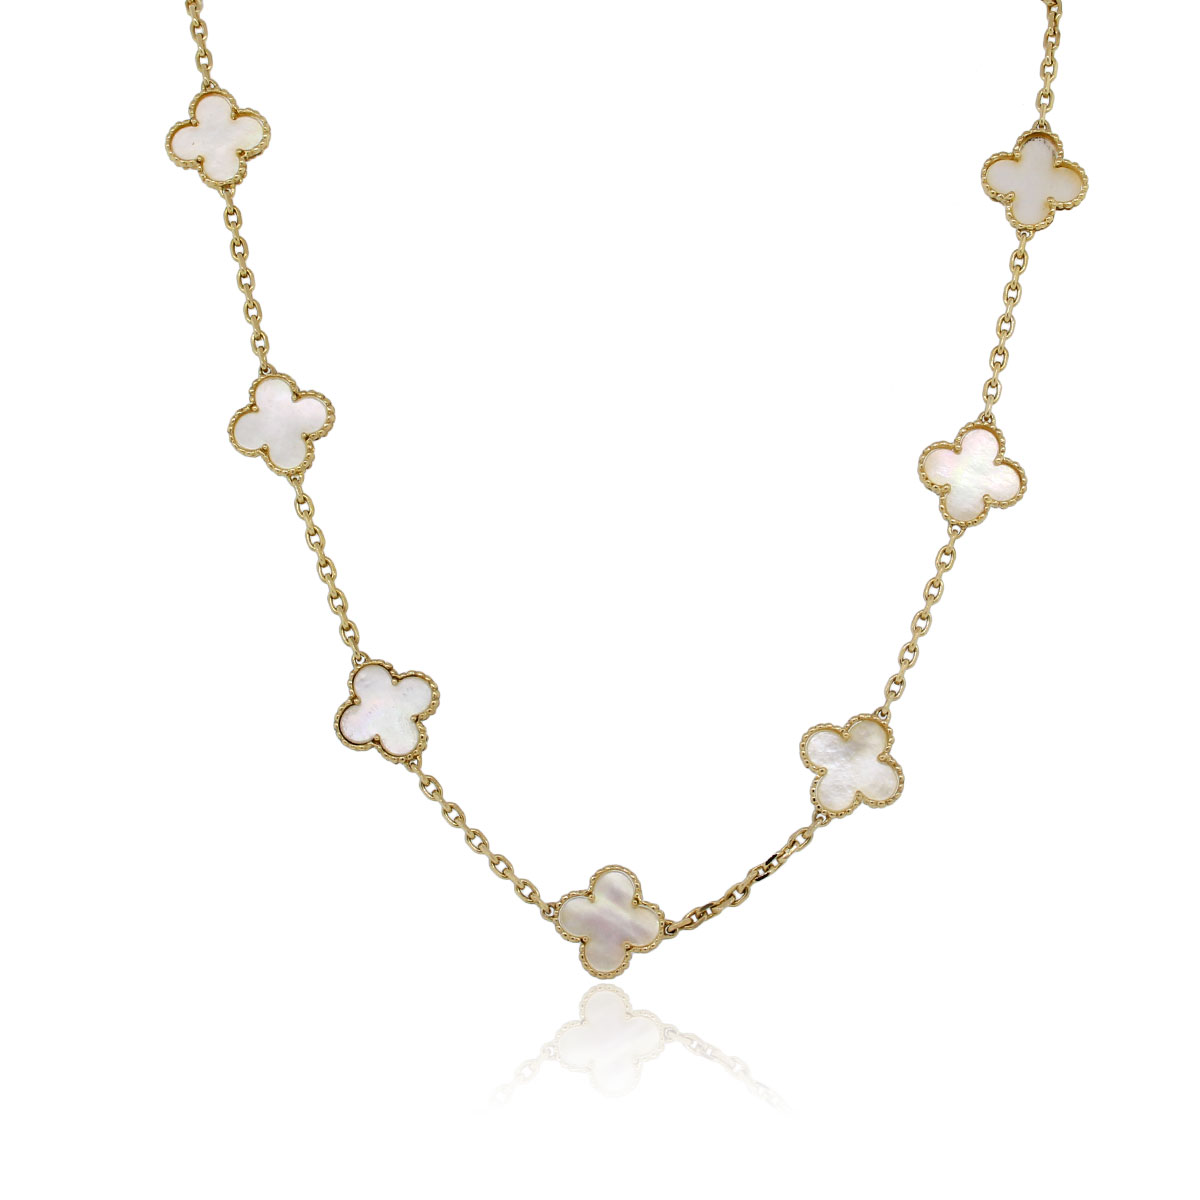 You are viewing this Van Cleef & Arpels Yellow Gold 10 Motif Alhambra Necklace!